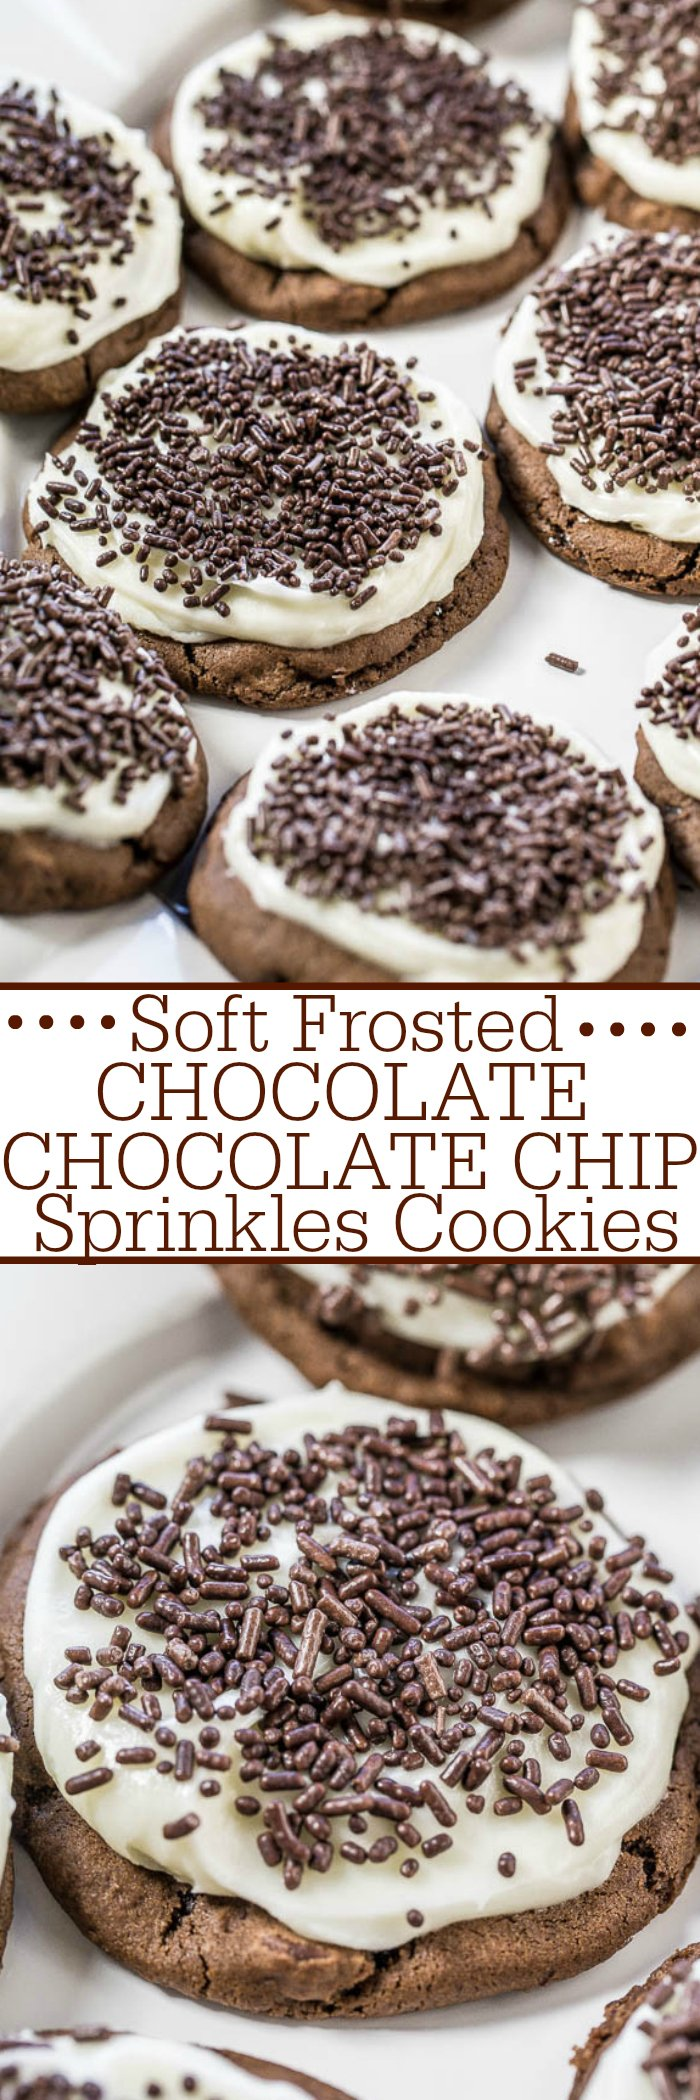 Soft Frosted Chocolate-Chocolate Chip Sprinkles Cookies - Soft, chewy, very chocolaty cookies topped with tangy cream cheese frosting!! A match made in heaven! And everything's better with sprinkles!!